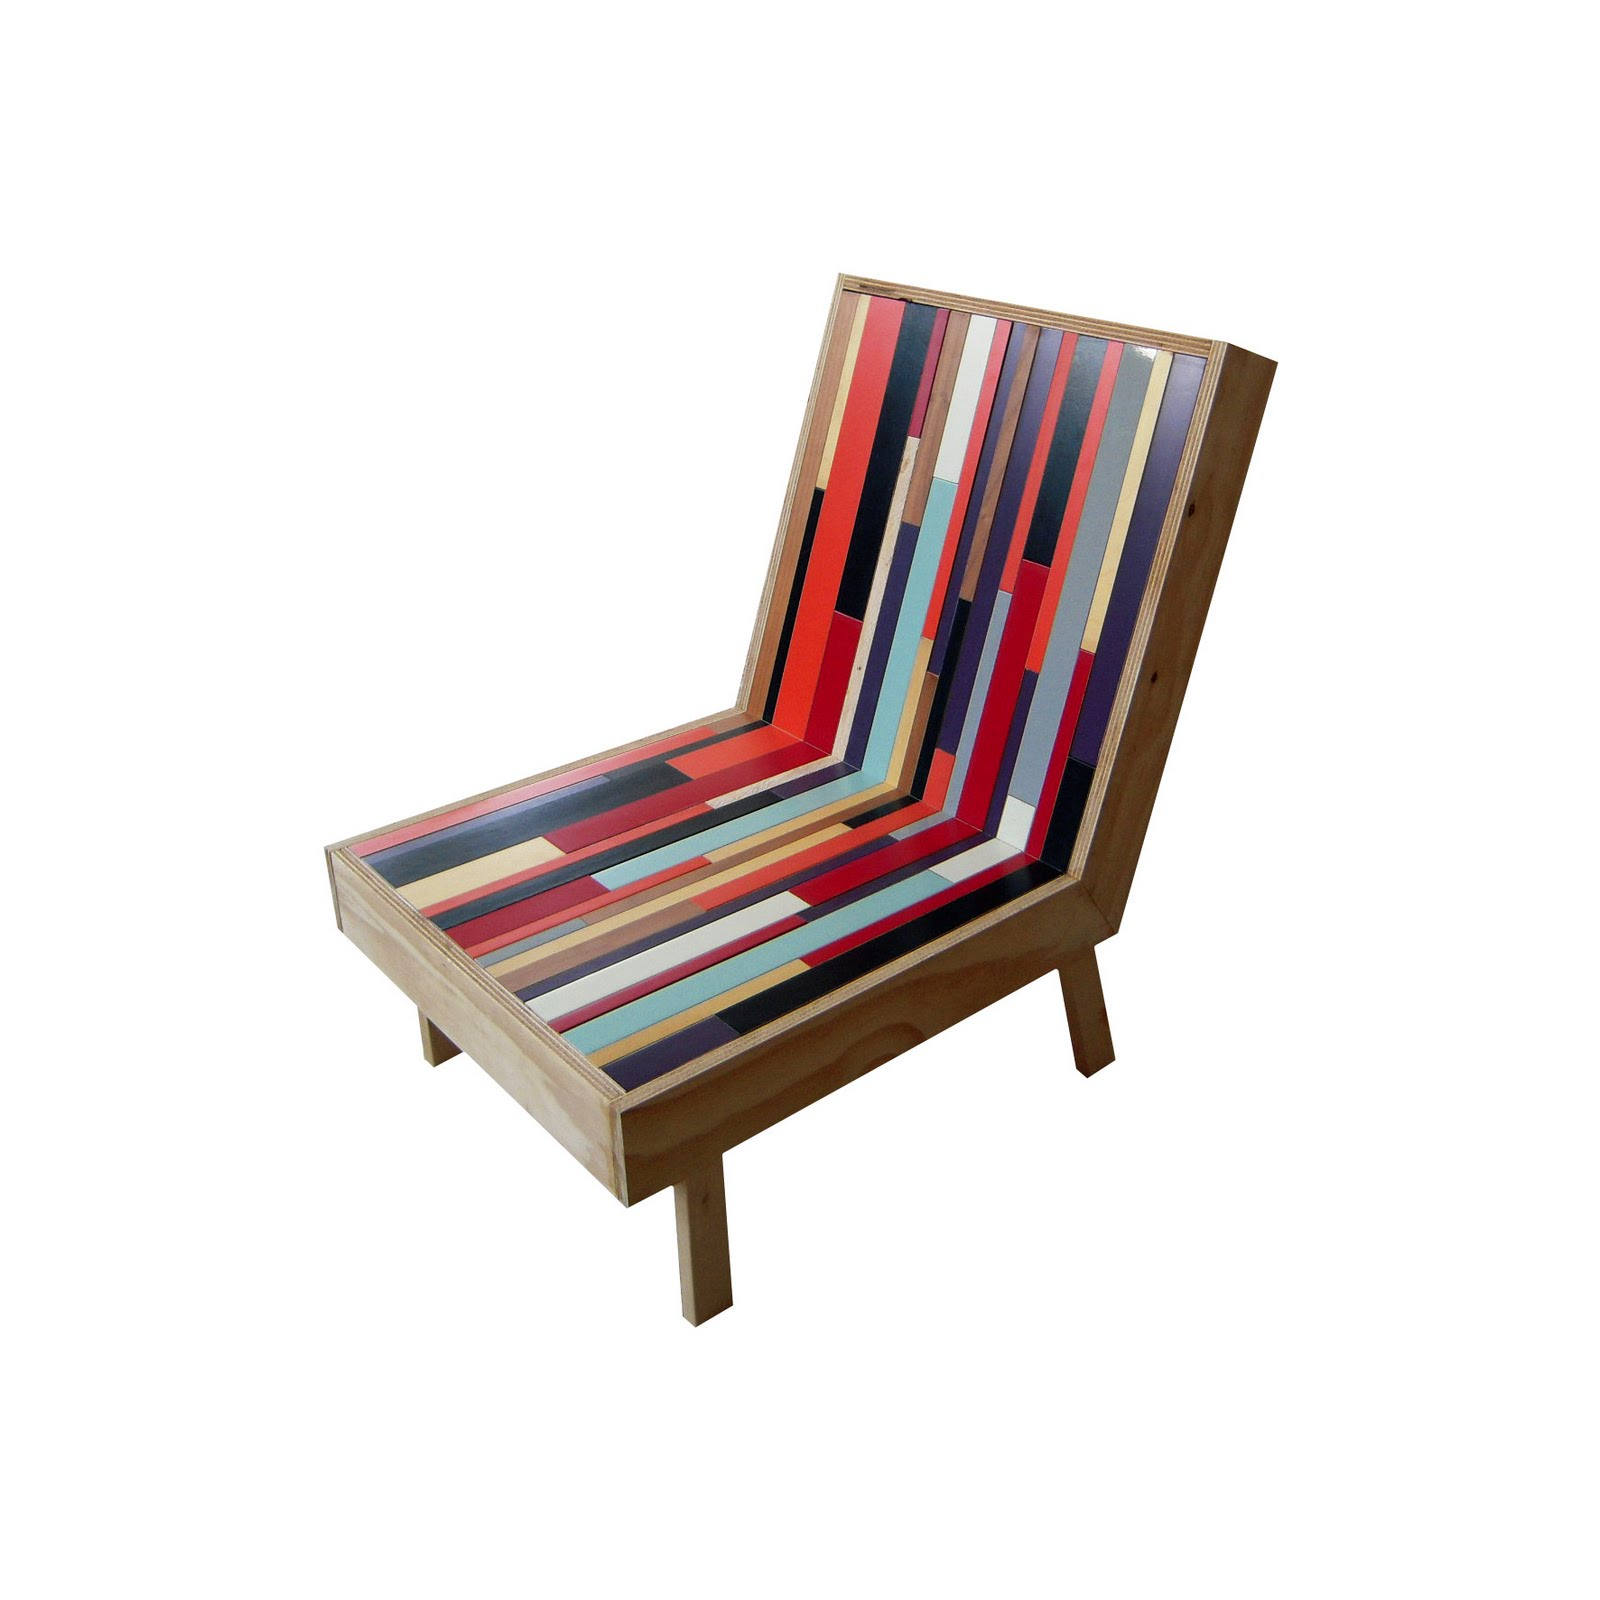 Weafer design furniture from recycled materials for Unusual chairs